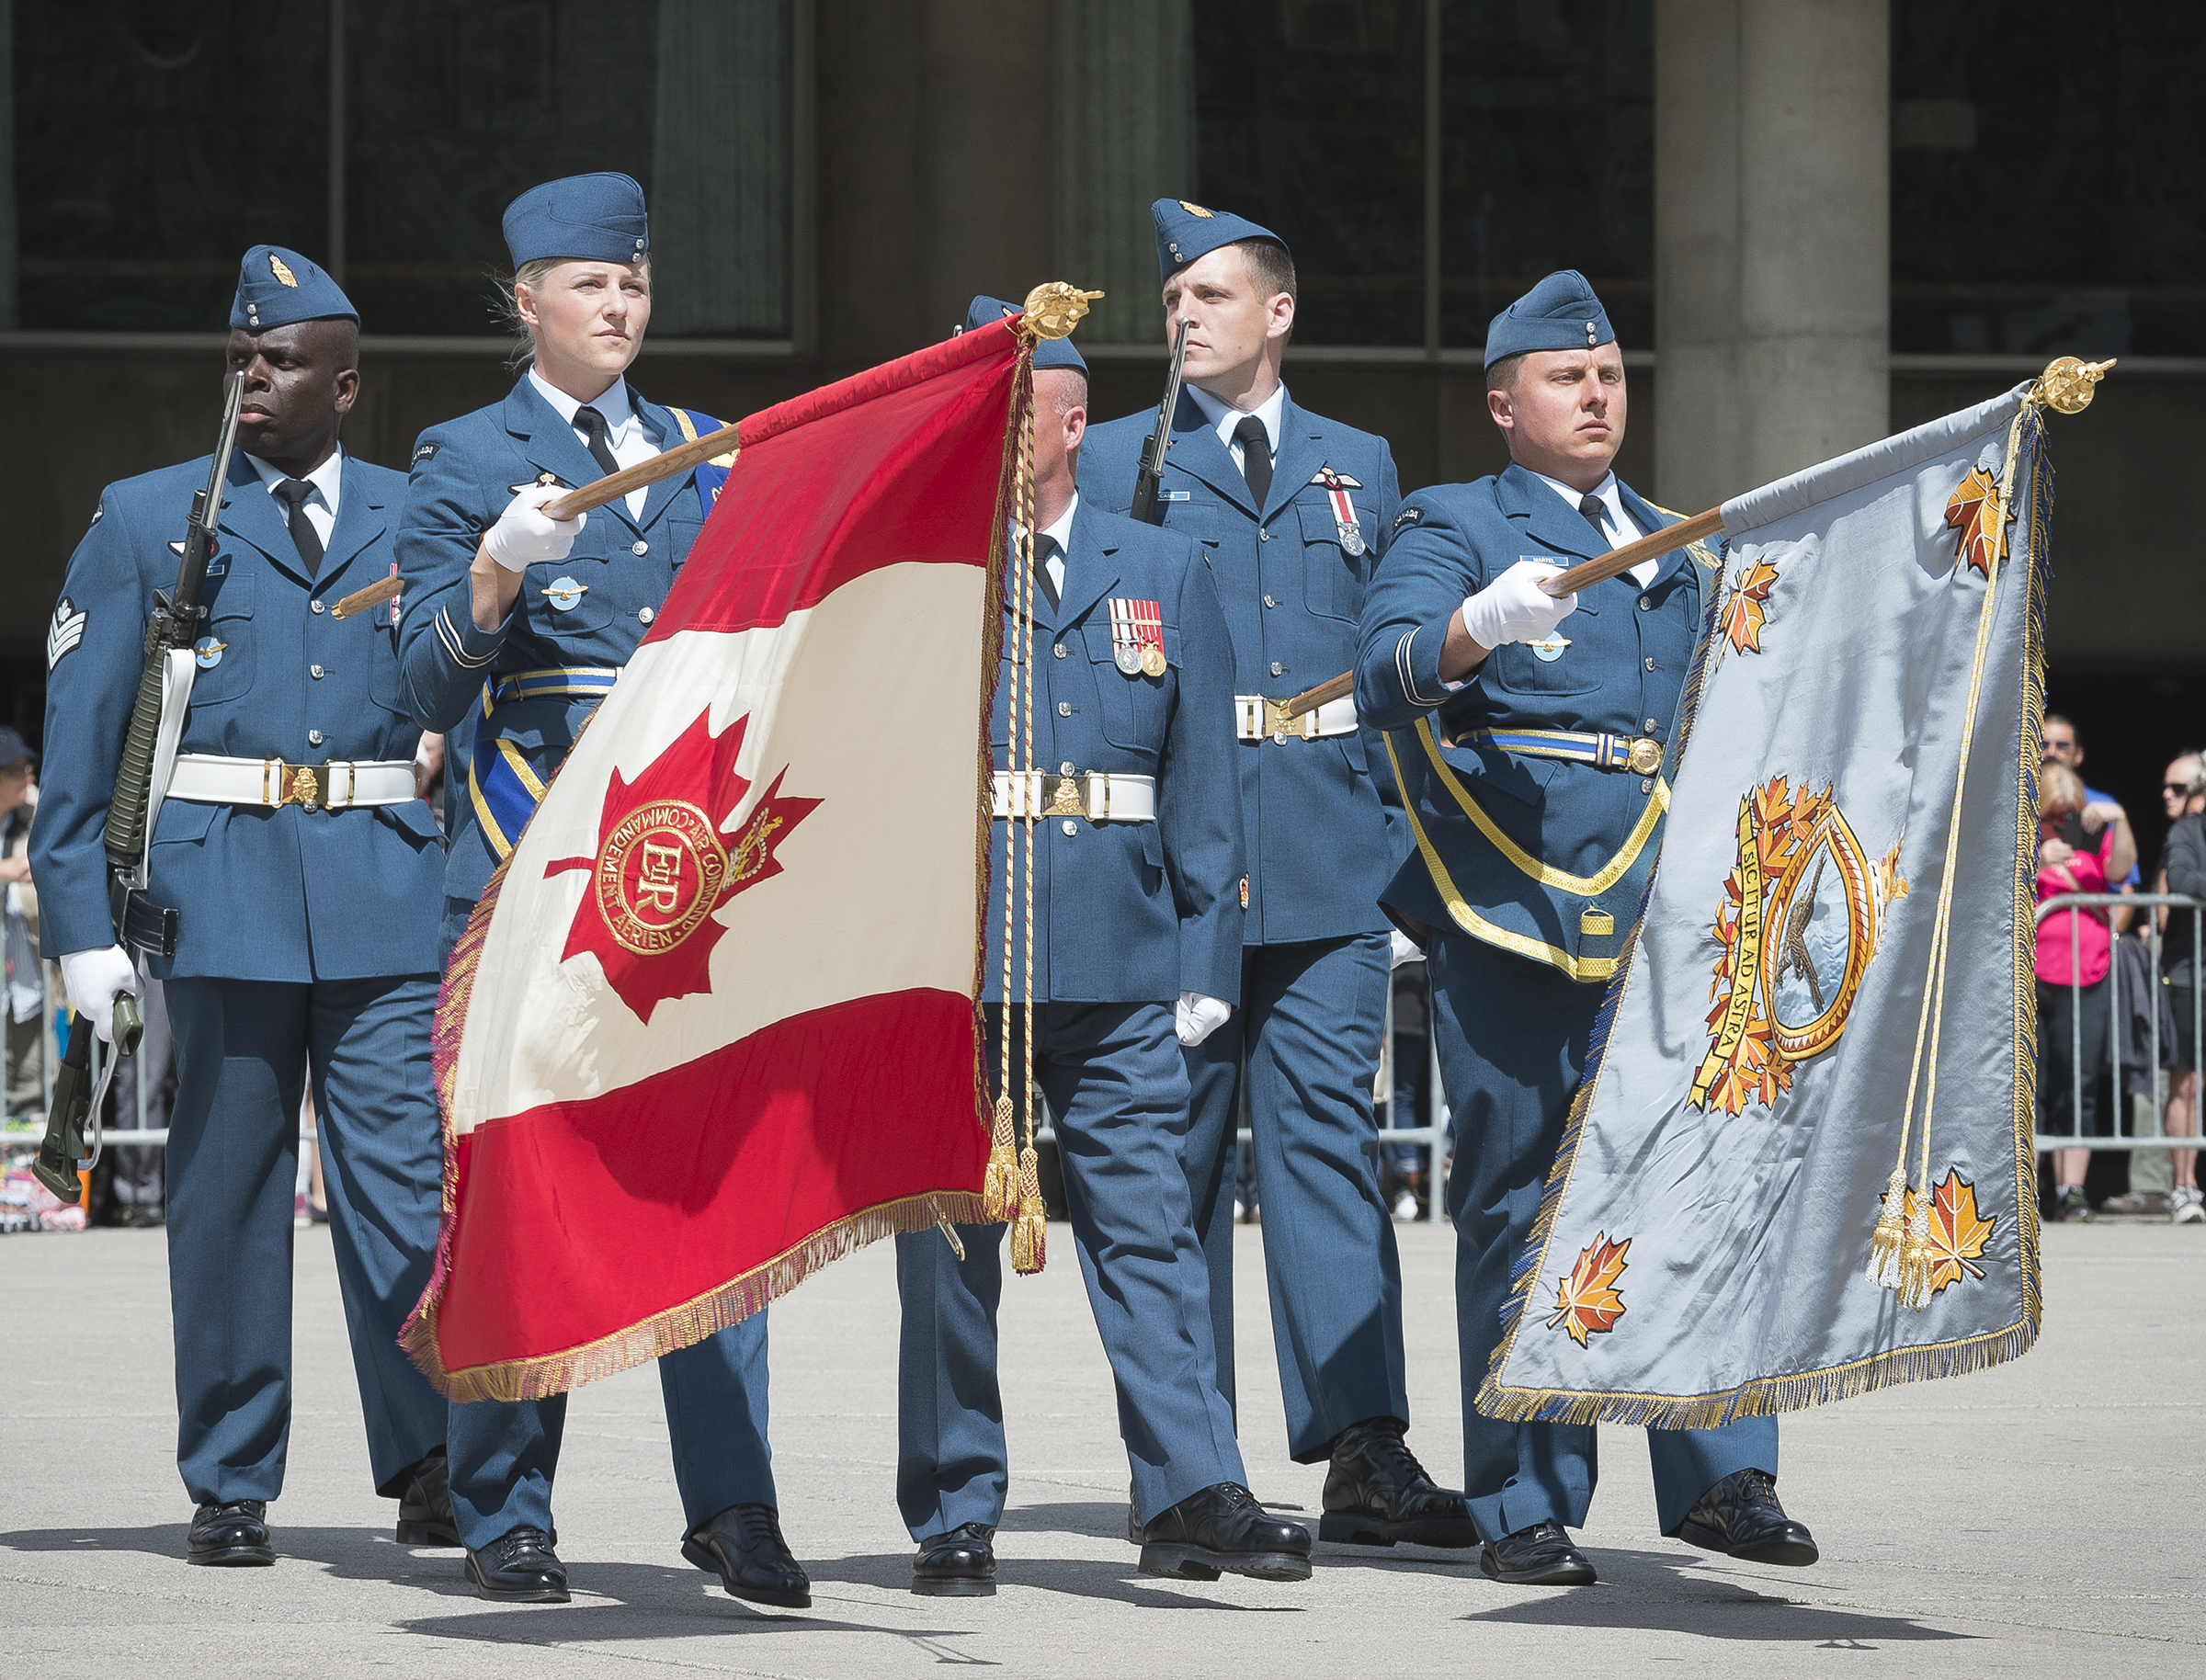 Several people wearing blue RCAF uniforms march together. Two are carrying flags with the staffs of the flags held horizontally.